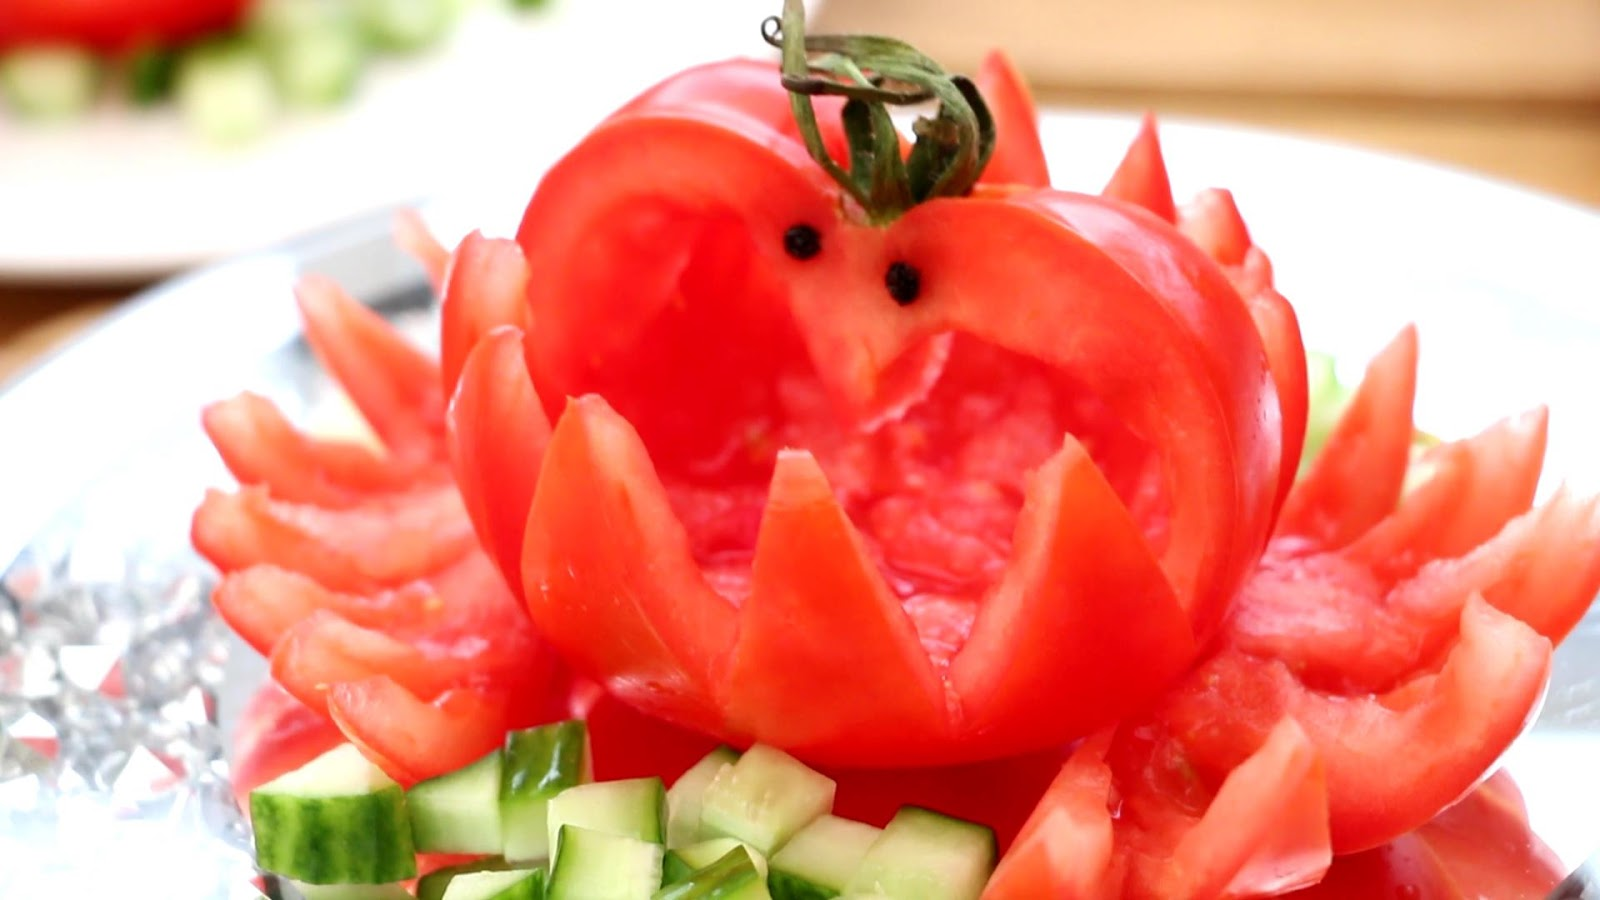 Vegetable Carving With Tomato ItalyPaul - Art...